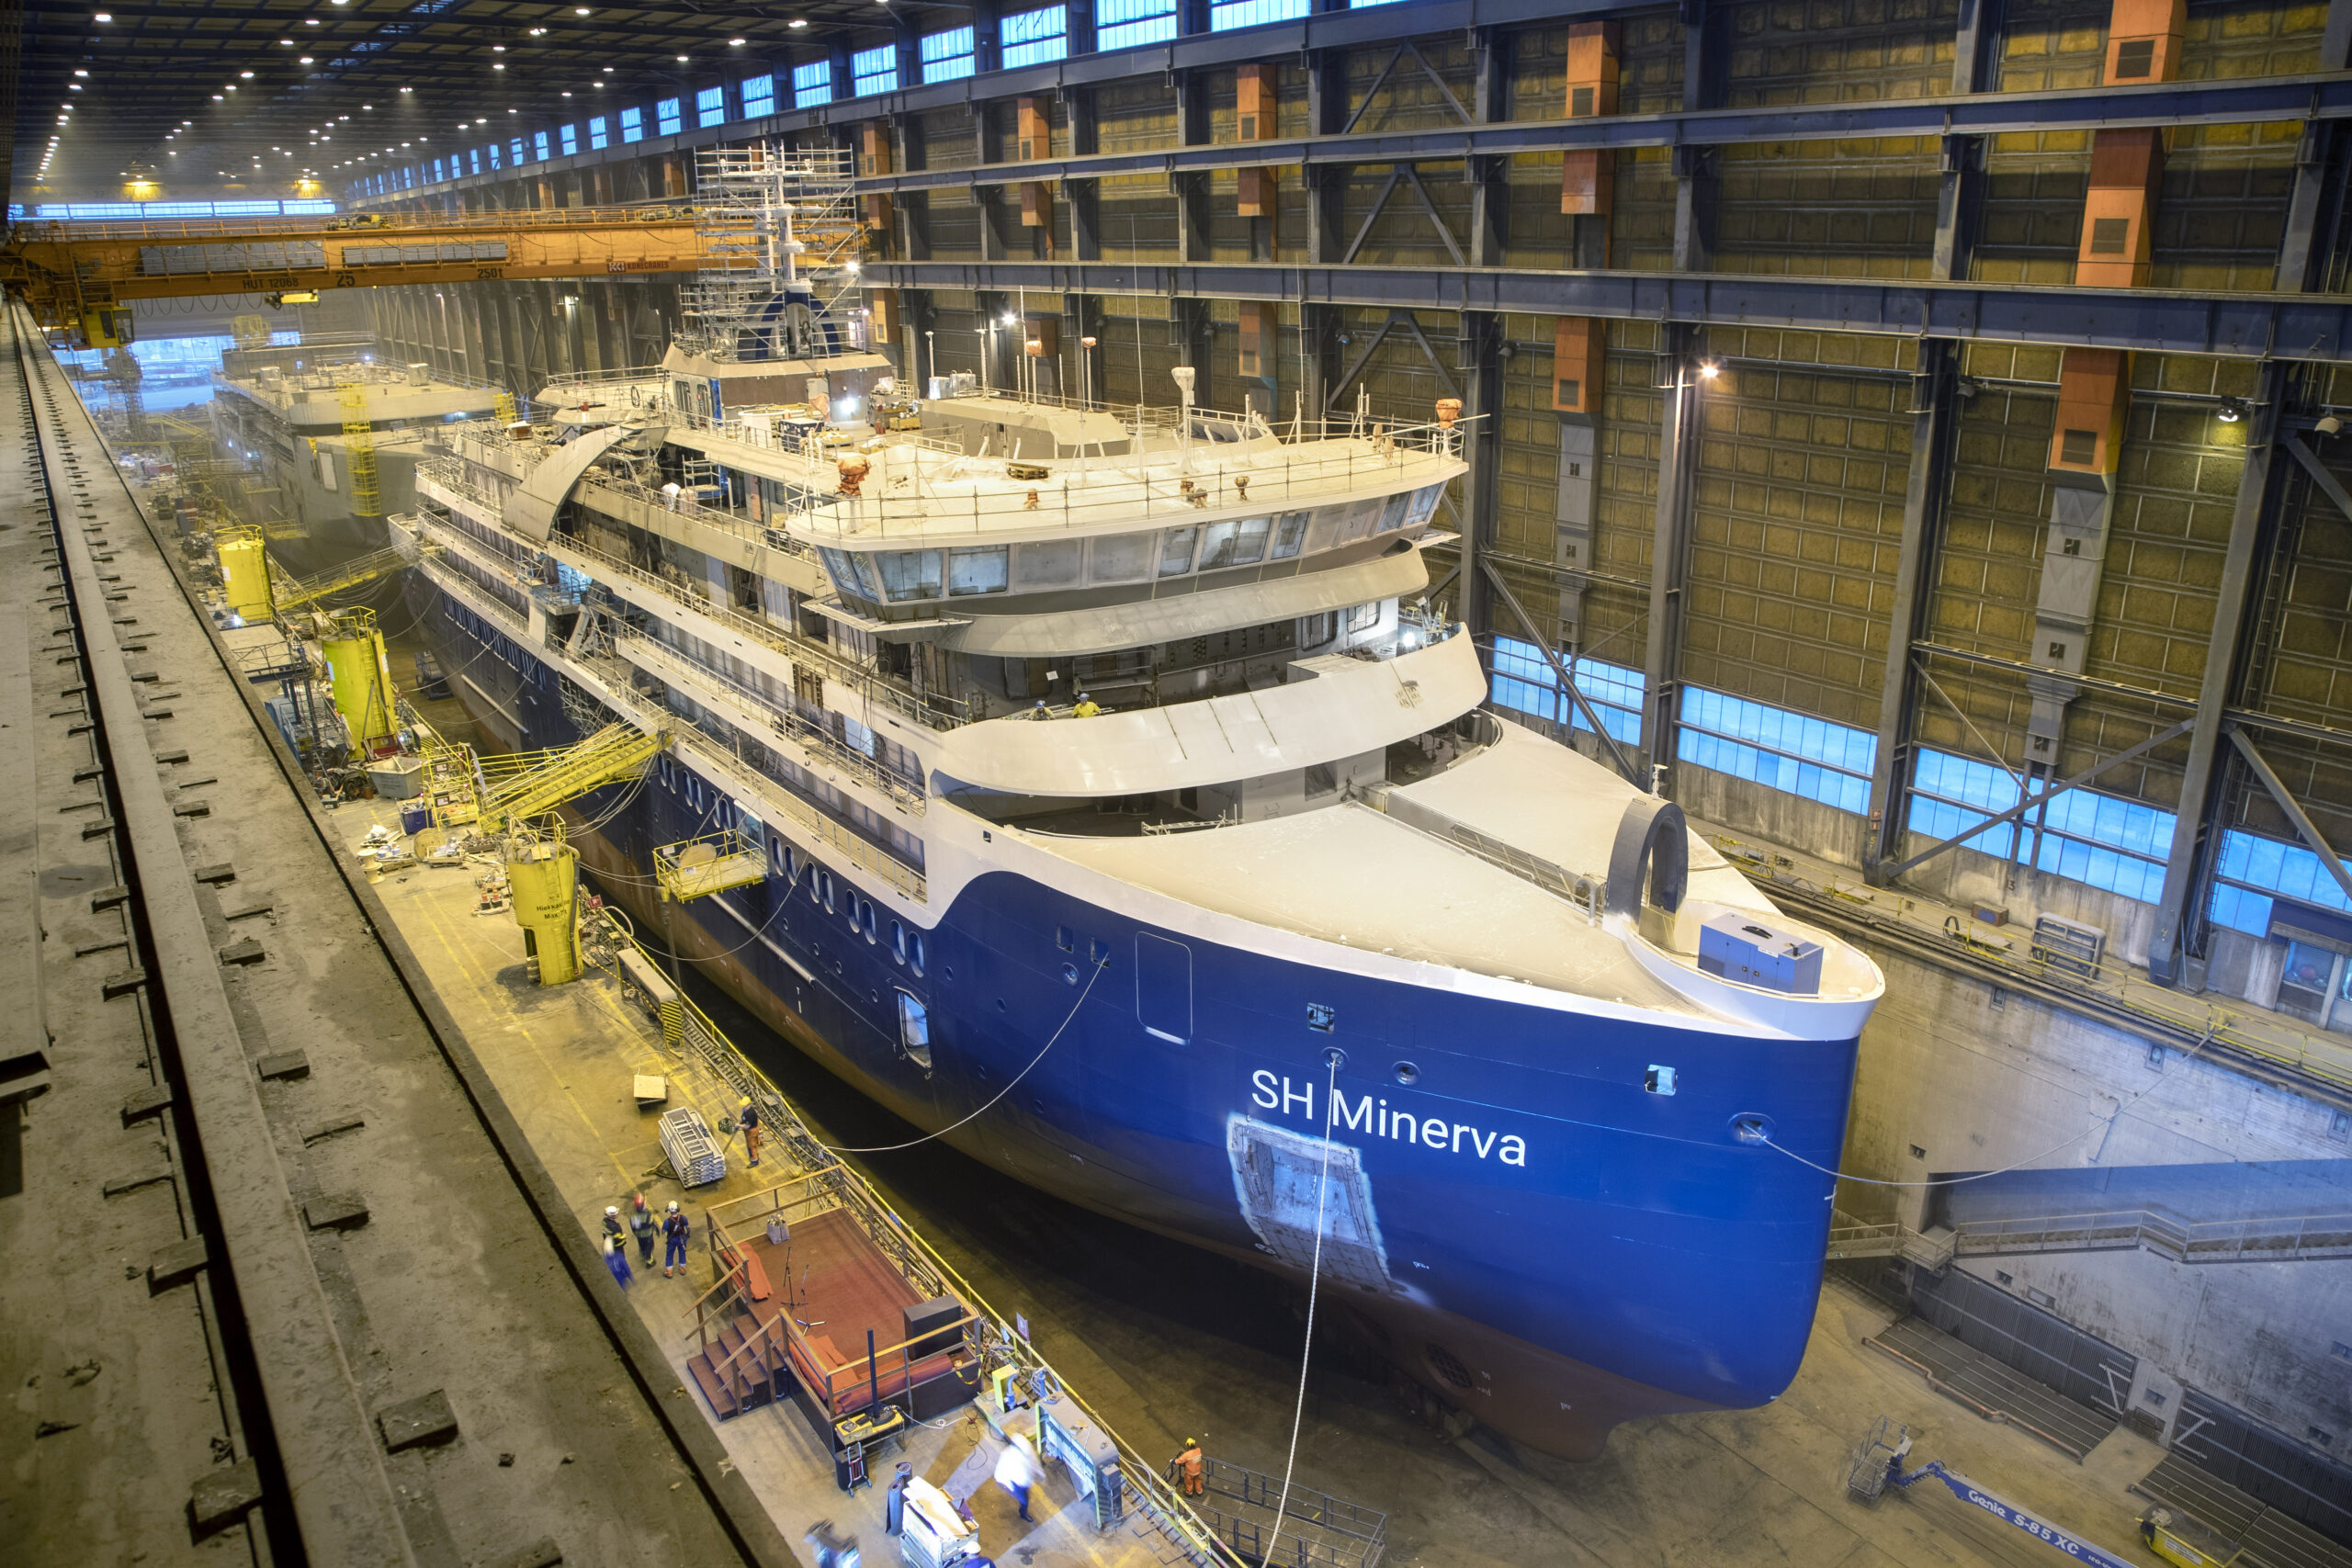 Expedition Cruise NB516 under Construction